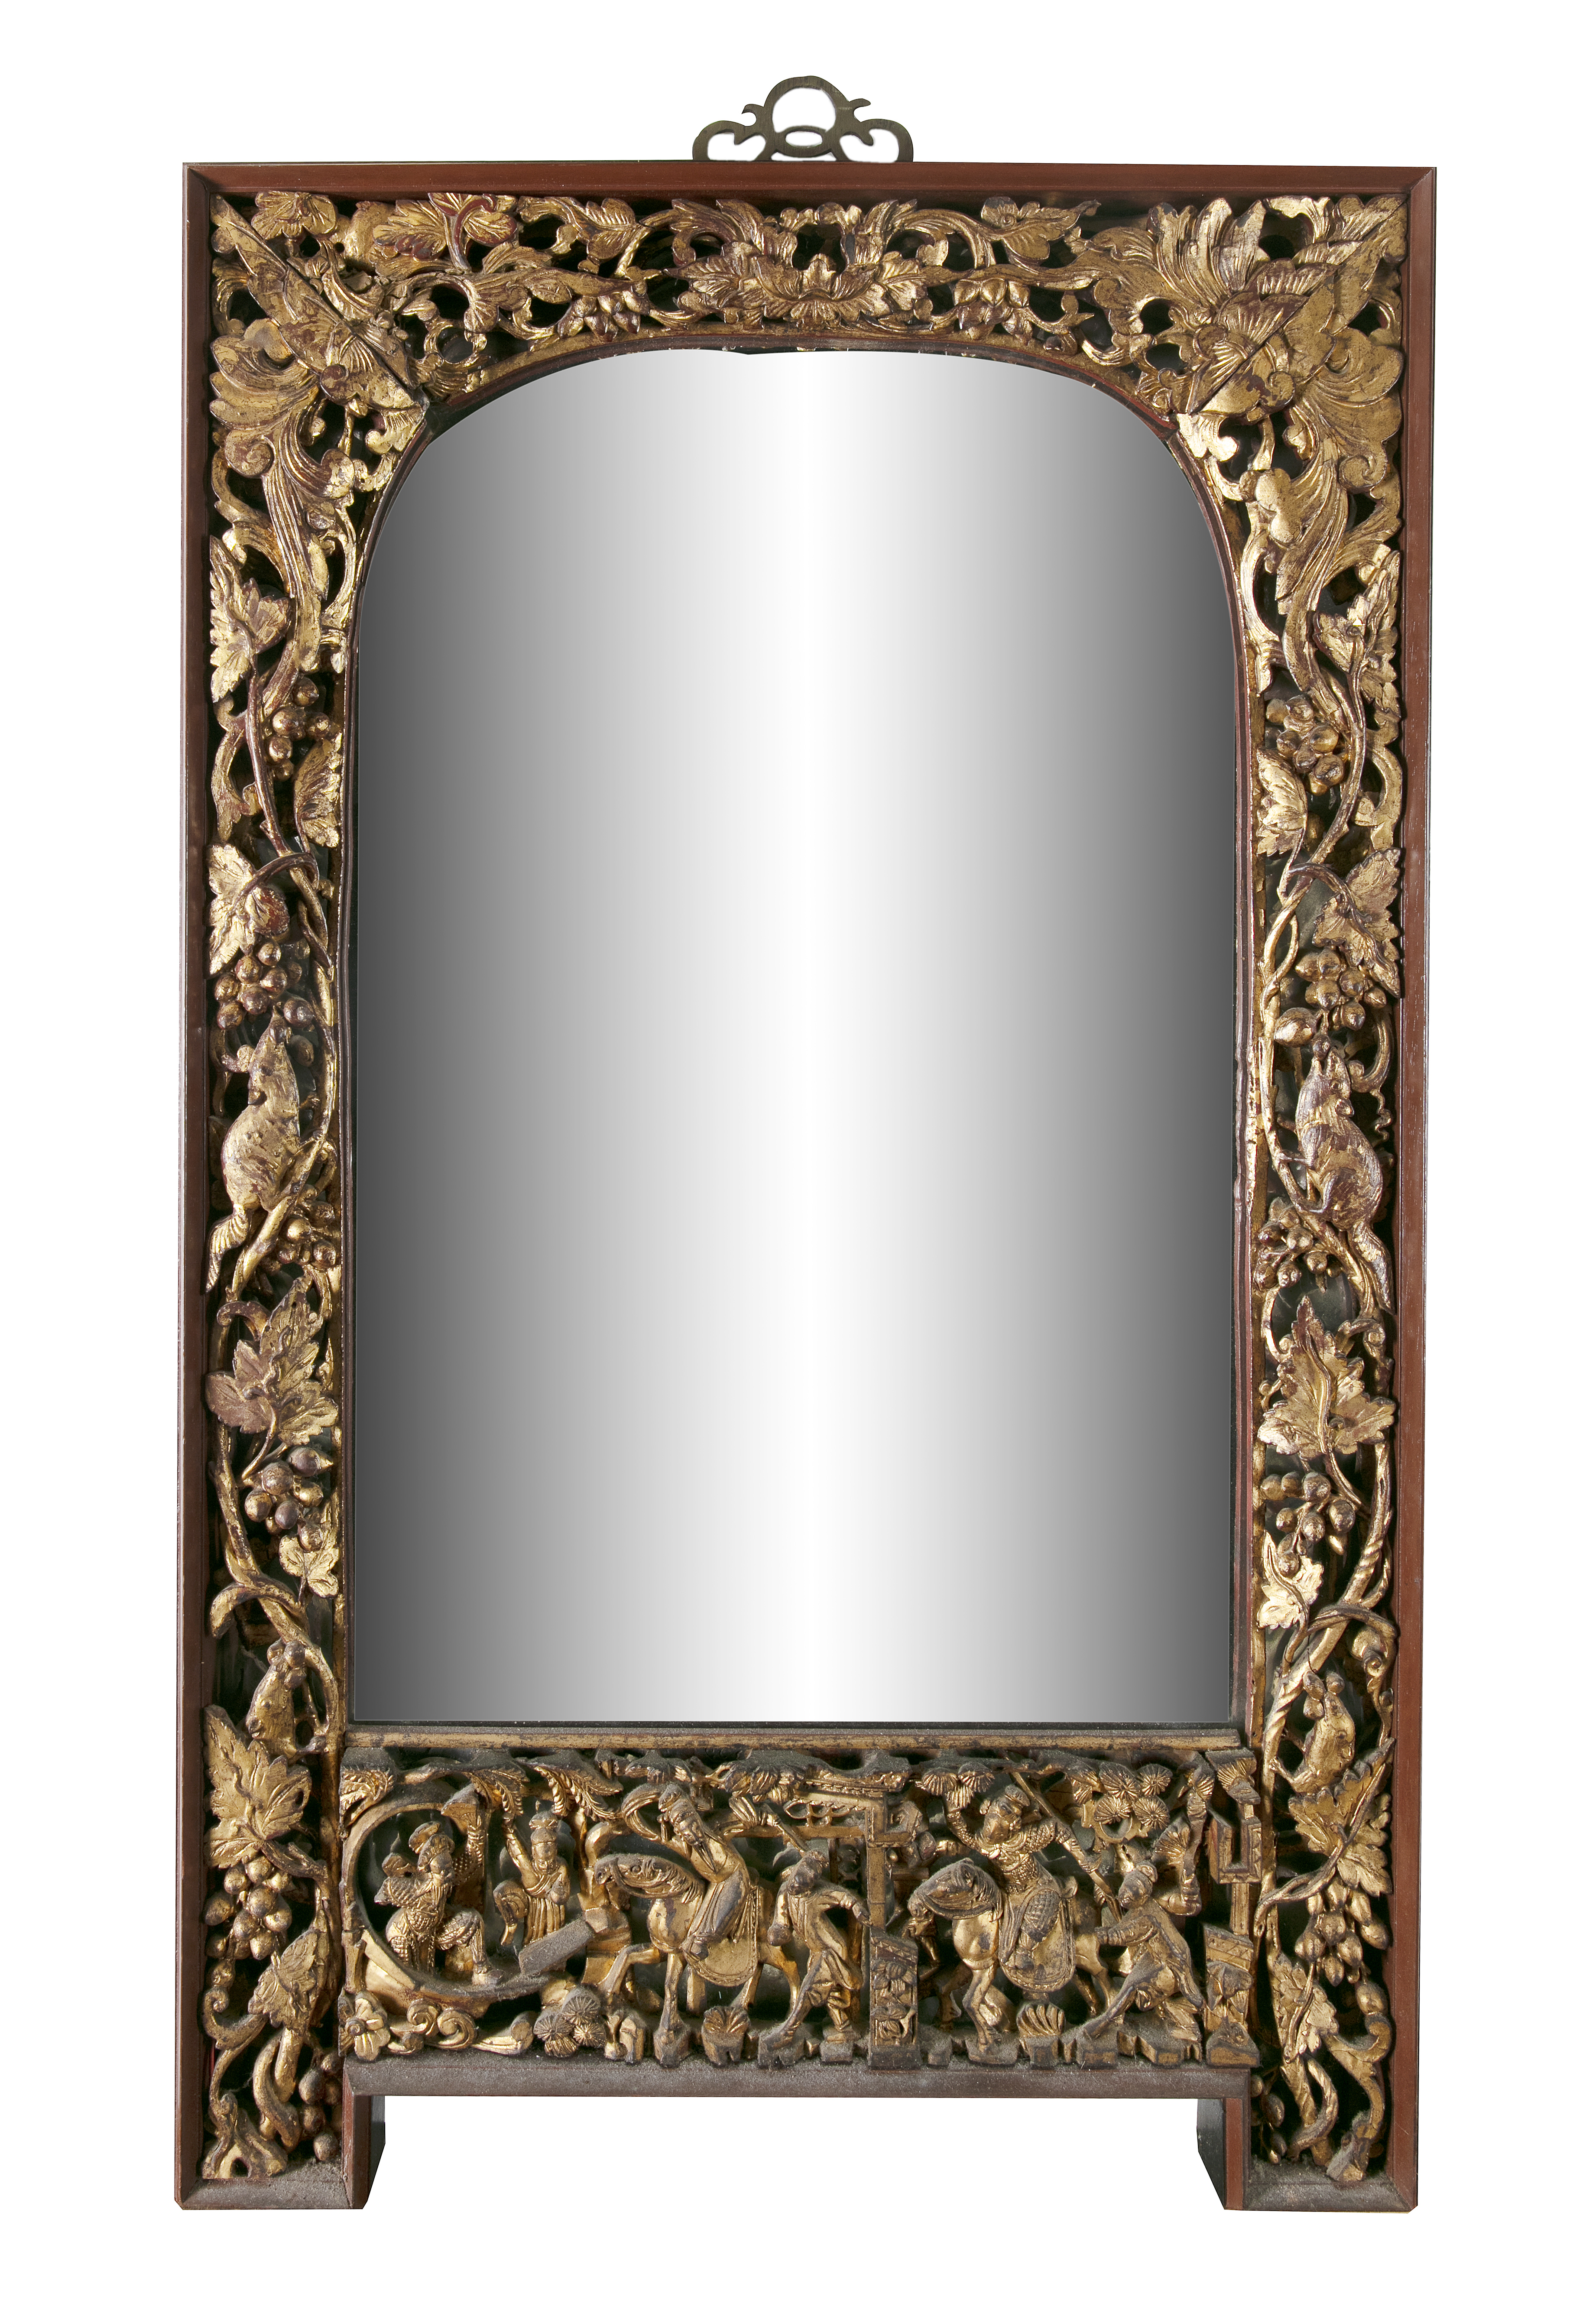 A PARCEL GILT-LACQUERED 'SQUIRRELS AND GRAPES' RETICULATED WOODEN FRAME SET WITH A MIRROR, Vietnam/